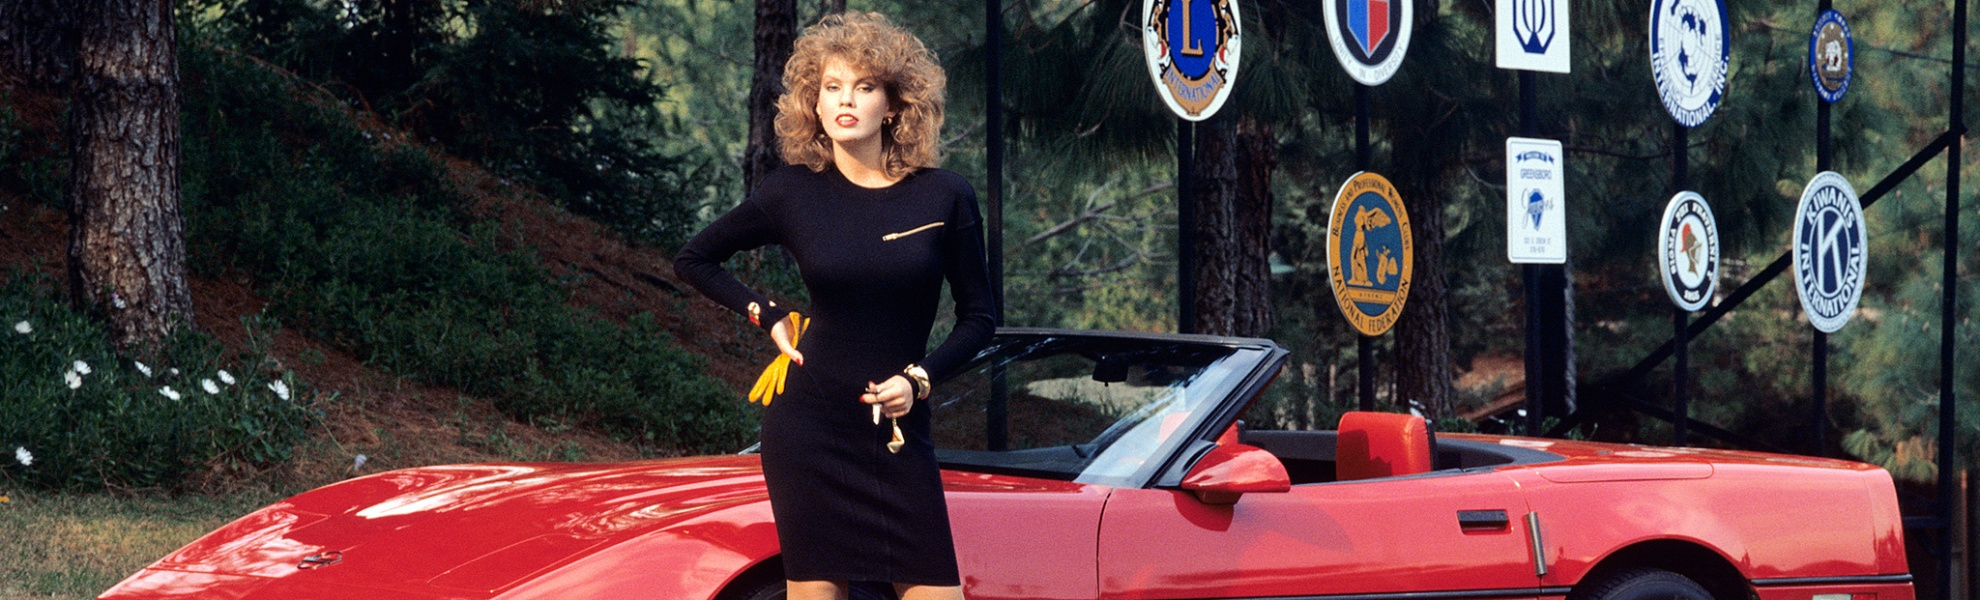 pink-cars-and-retro-girls-will-remind-you-of-the-playboy-lifestyle_2.jpg